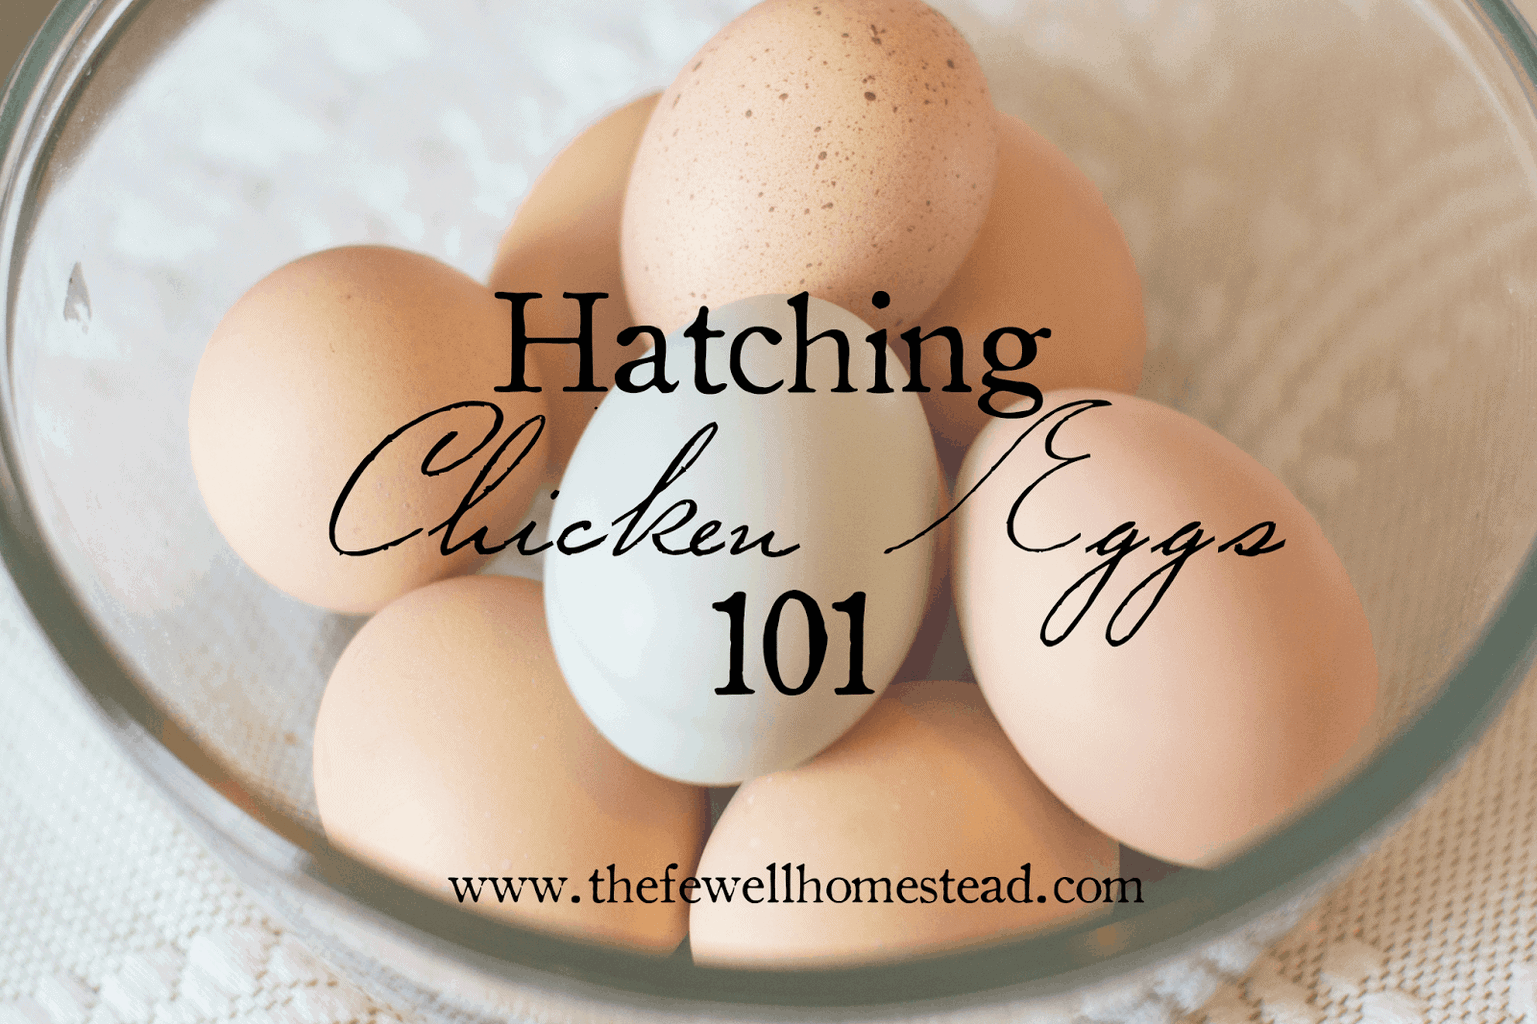 Hatching Chicken Eggs 101